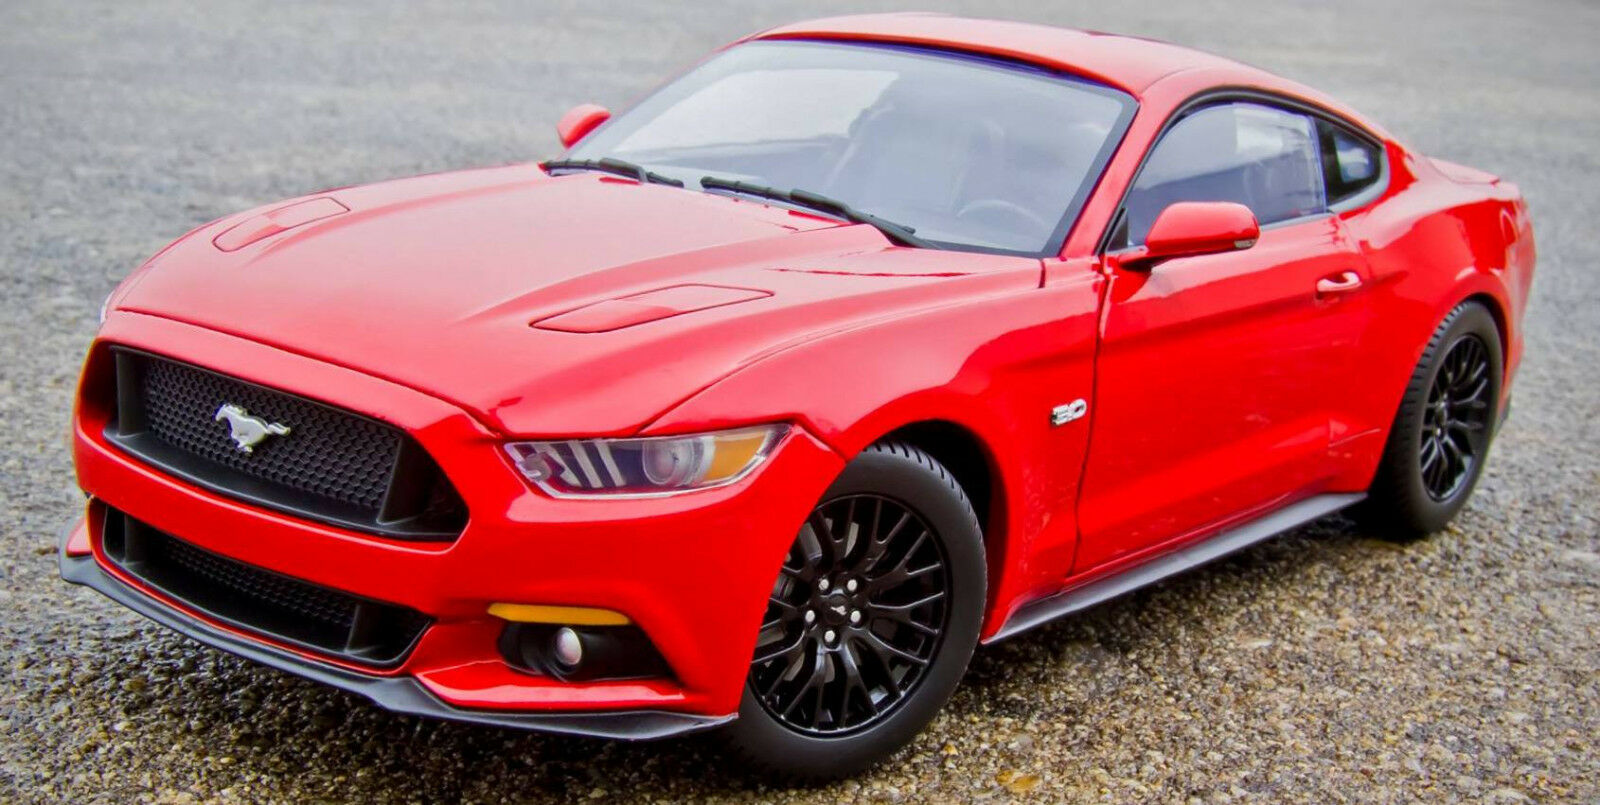 2015 Mustang RED Autoworld 1 18 1040